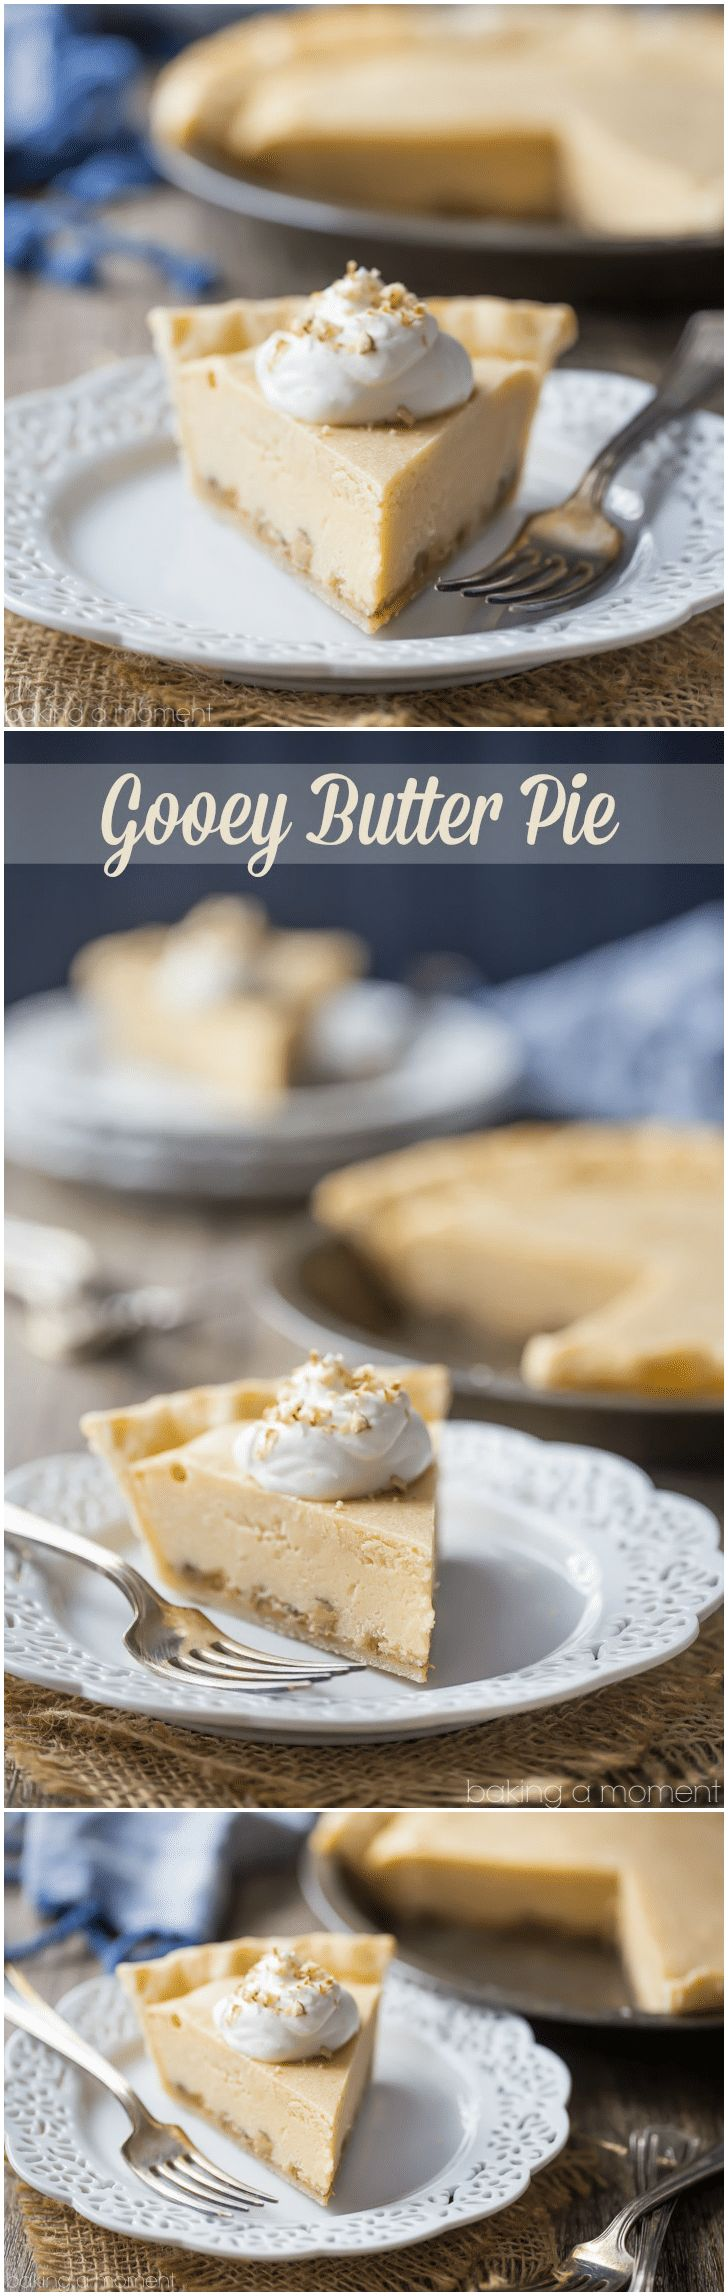 Gooey Butter Pie: Buttery brown sugar custard, salted caramel, and crunchy pecans, cradled in the flakiest ever pie crust!  food desserts pie #ad @White Lily via @Allie Baking a Moment